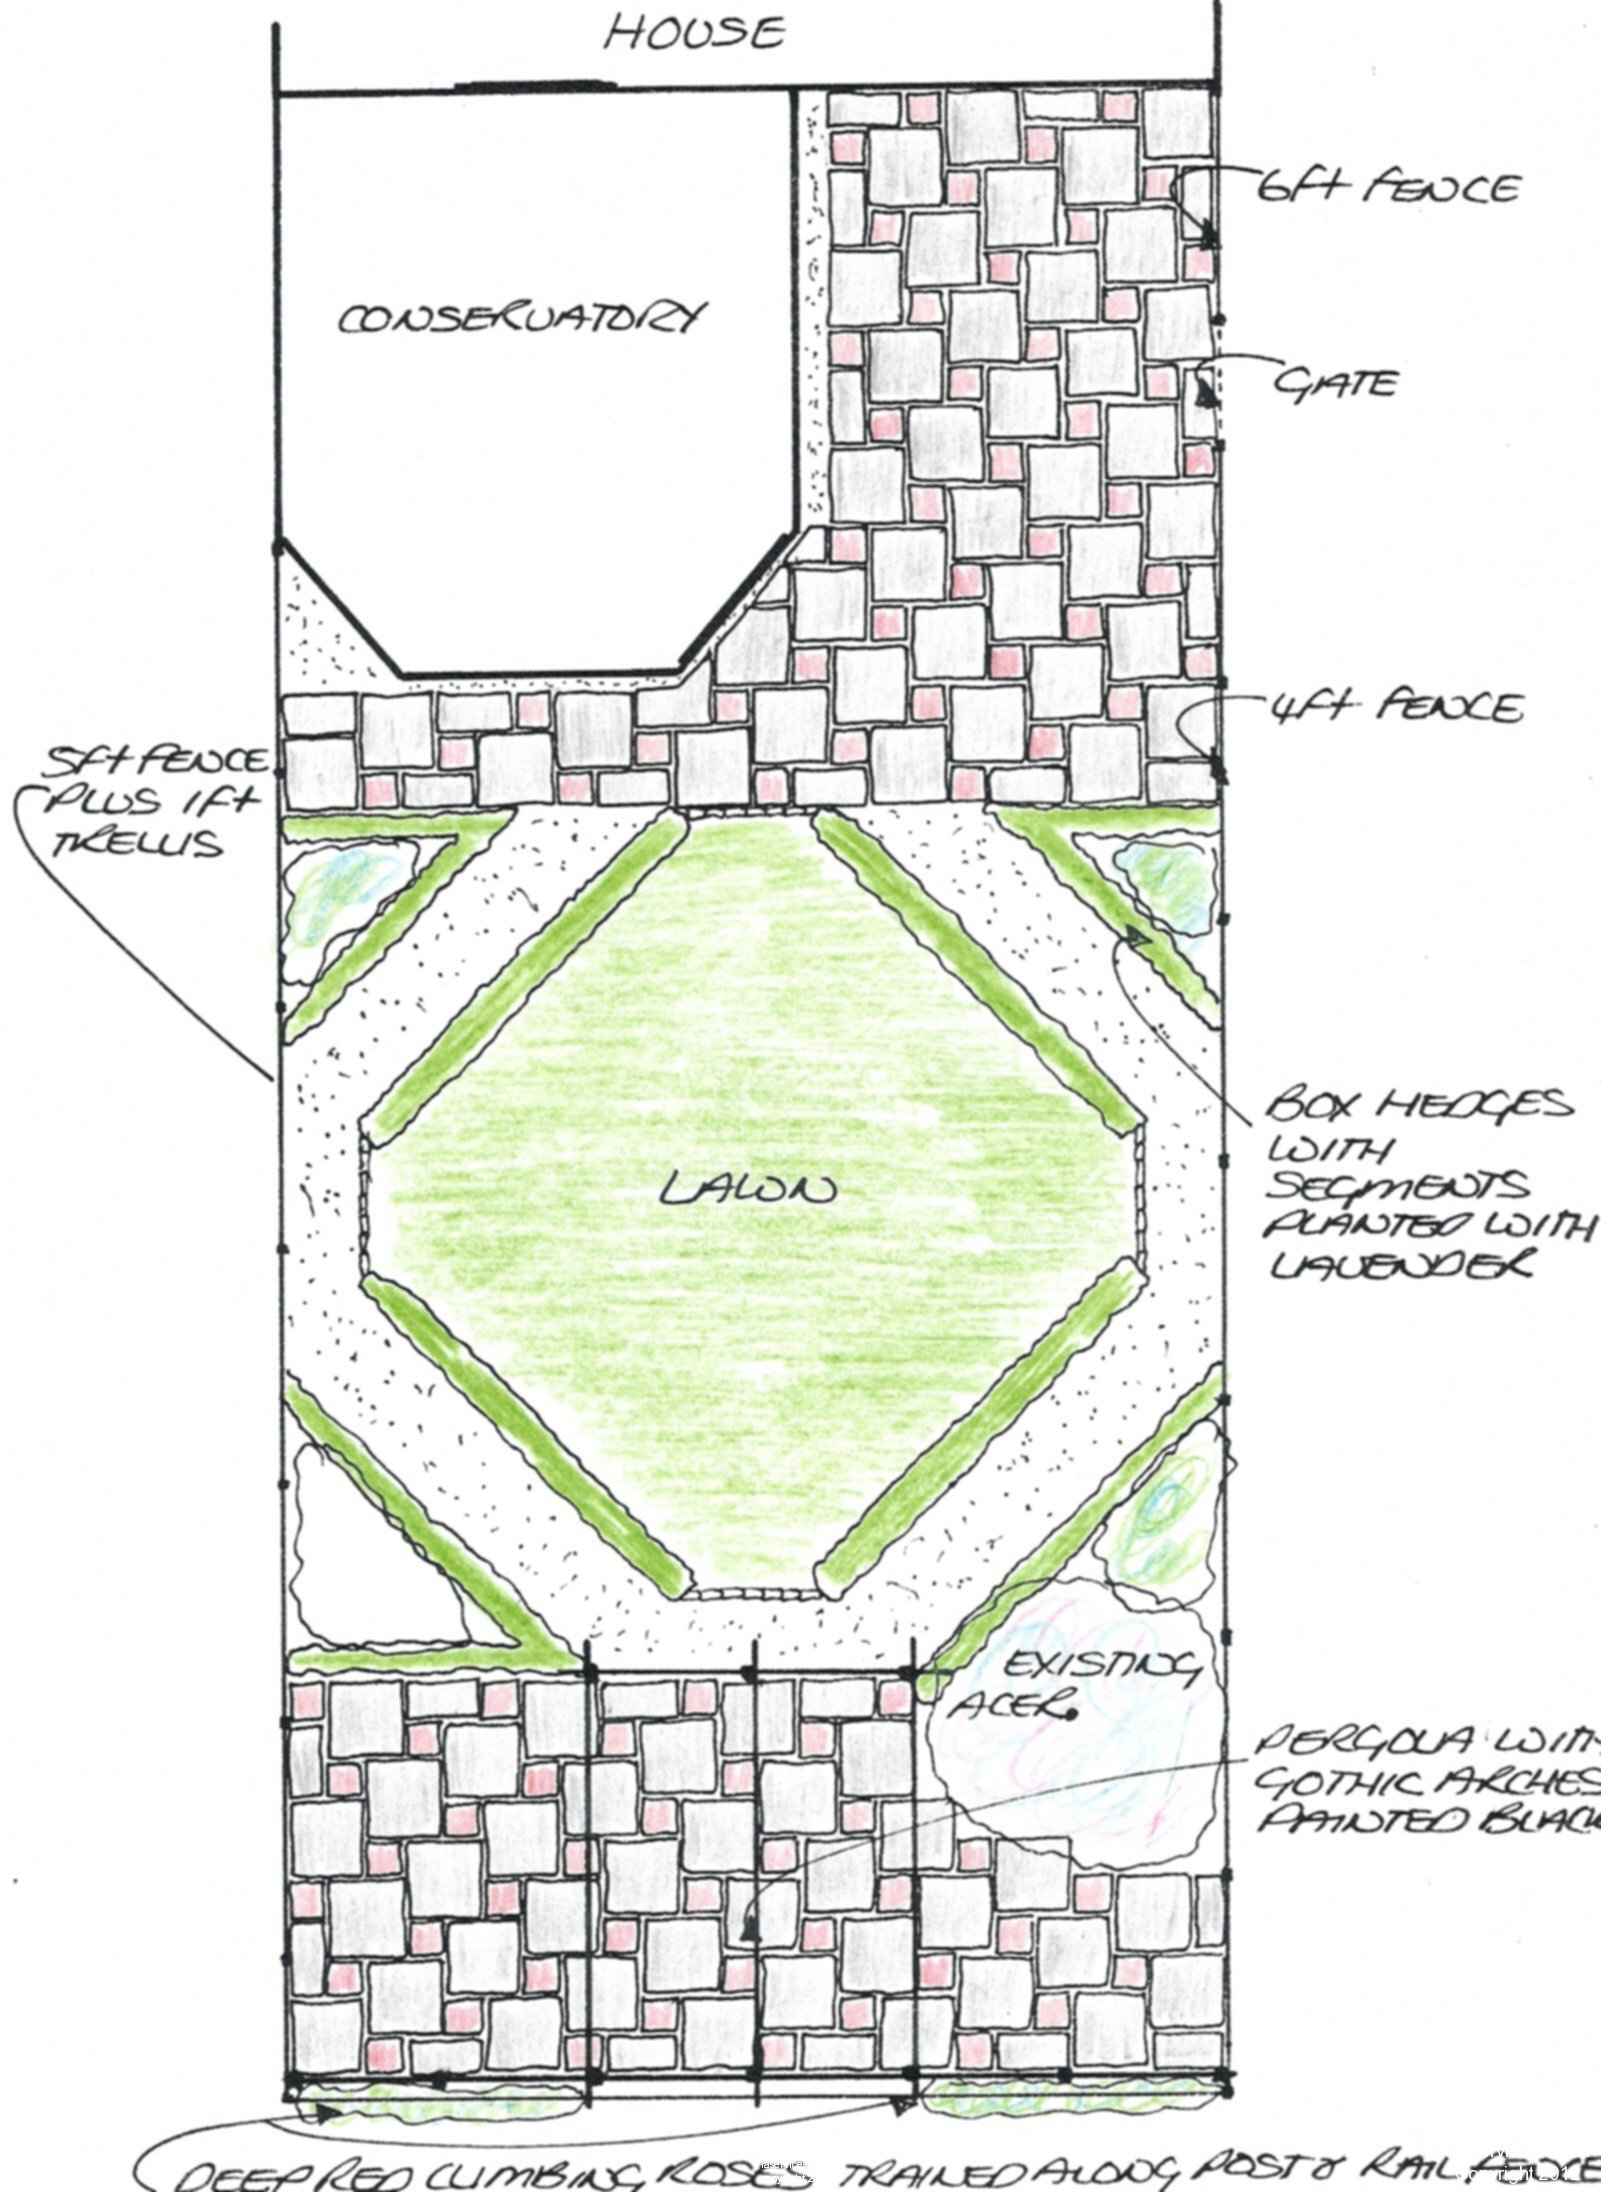 Garden designs landscaping and agricultural services ltd for Suzhou architecture gardens landscape planning design company limited